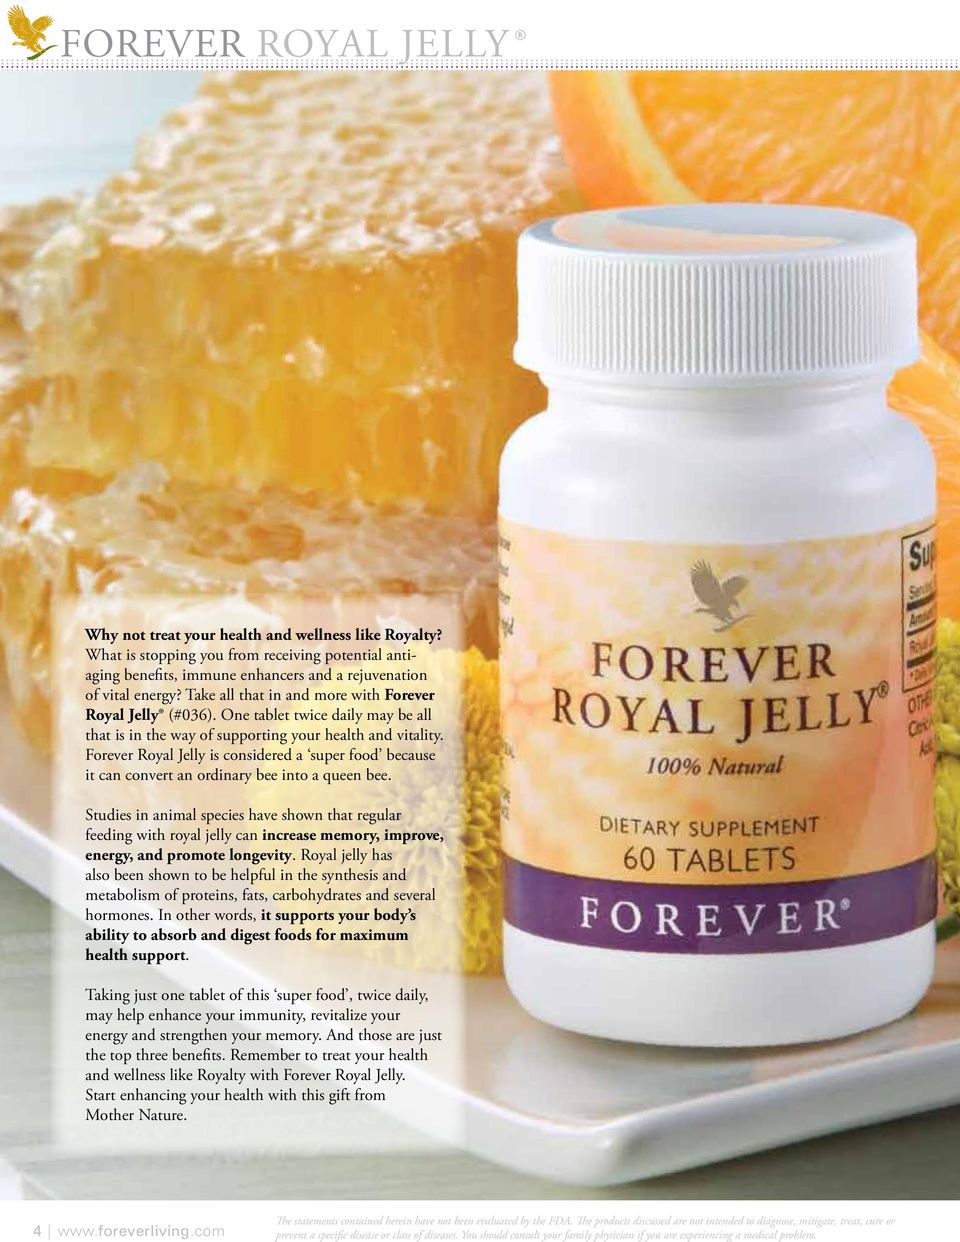 Forever Royal Jelly is considered a super food because it can convert an ordinary bee into a queen bee.